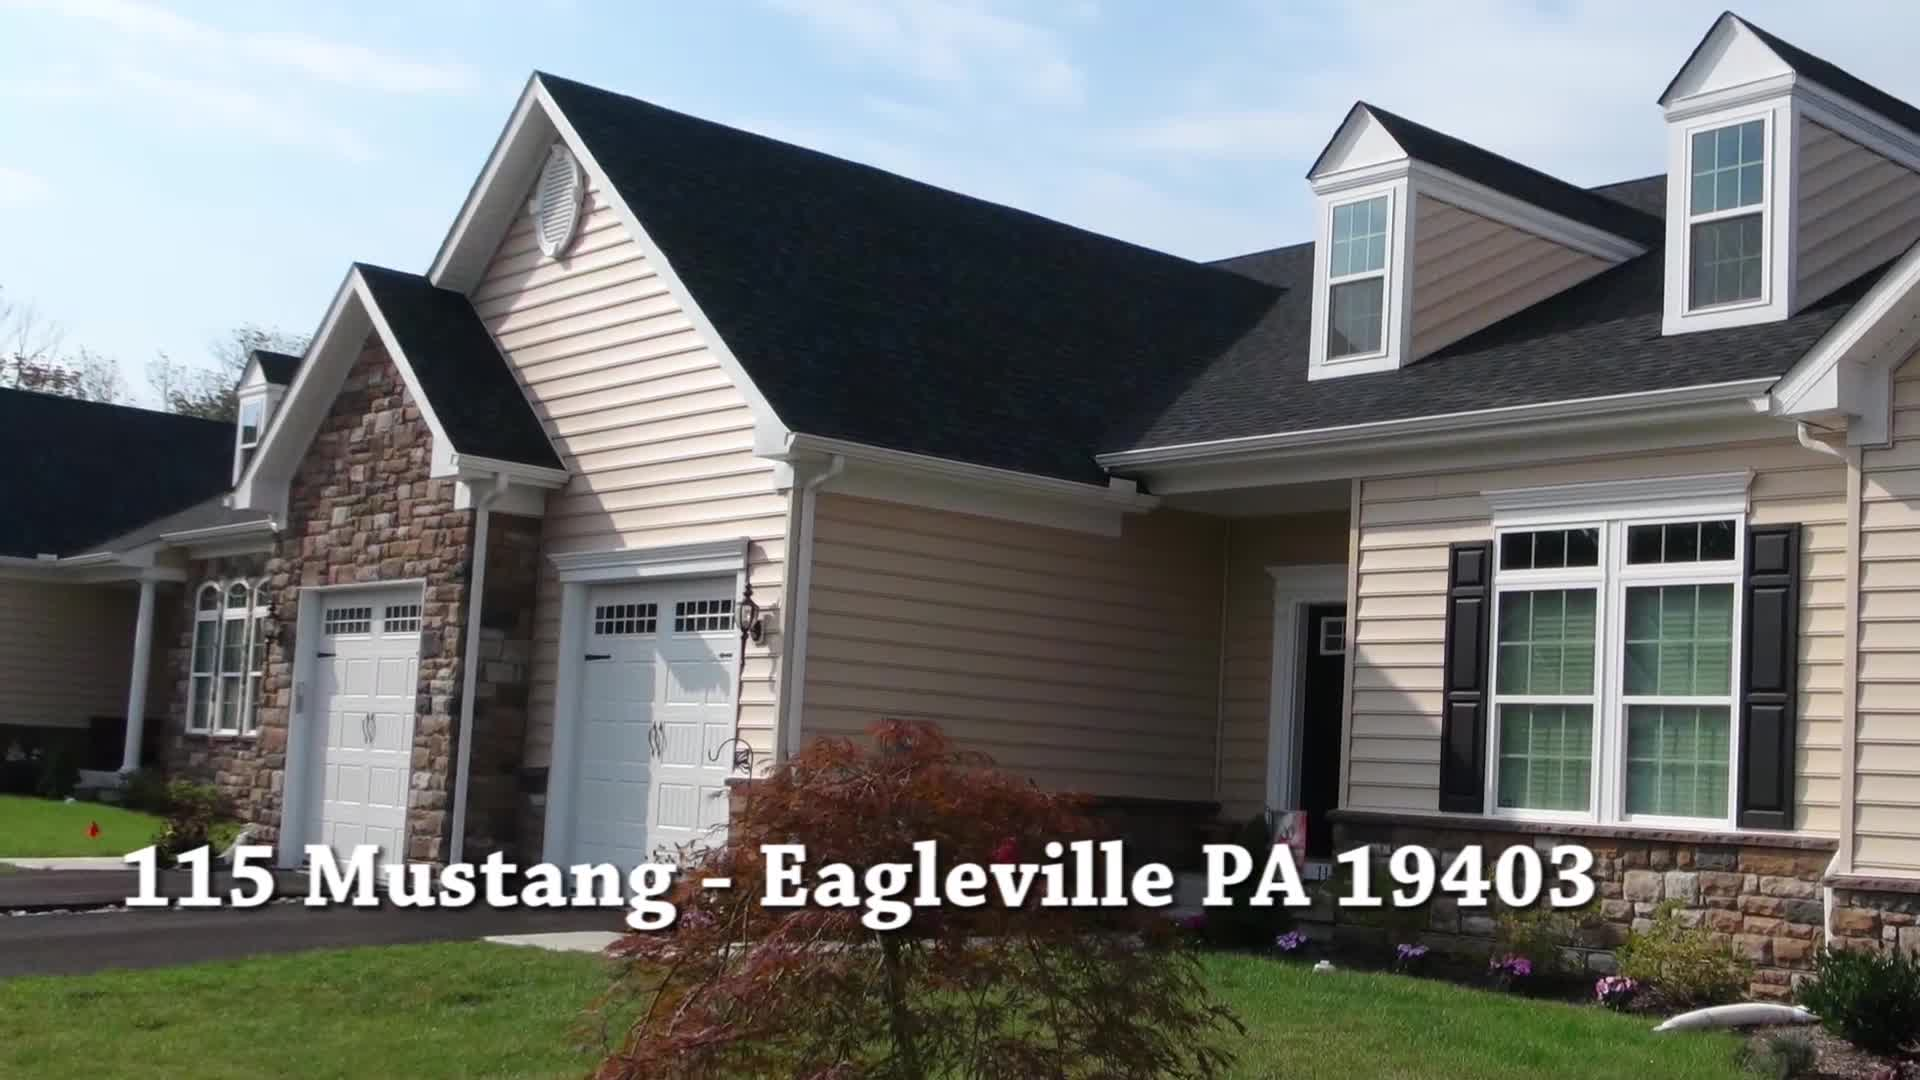 Luxury homes for sale in 115 Mustang Eagleville PA 19403 – Foreclosure Properties Eagleville PA 19403